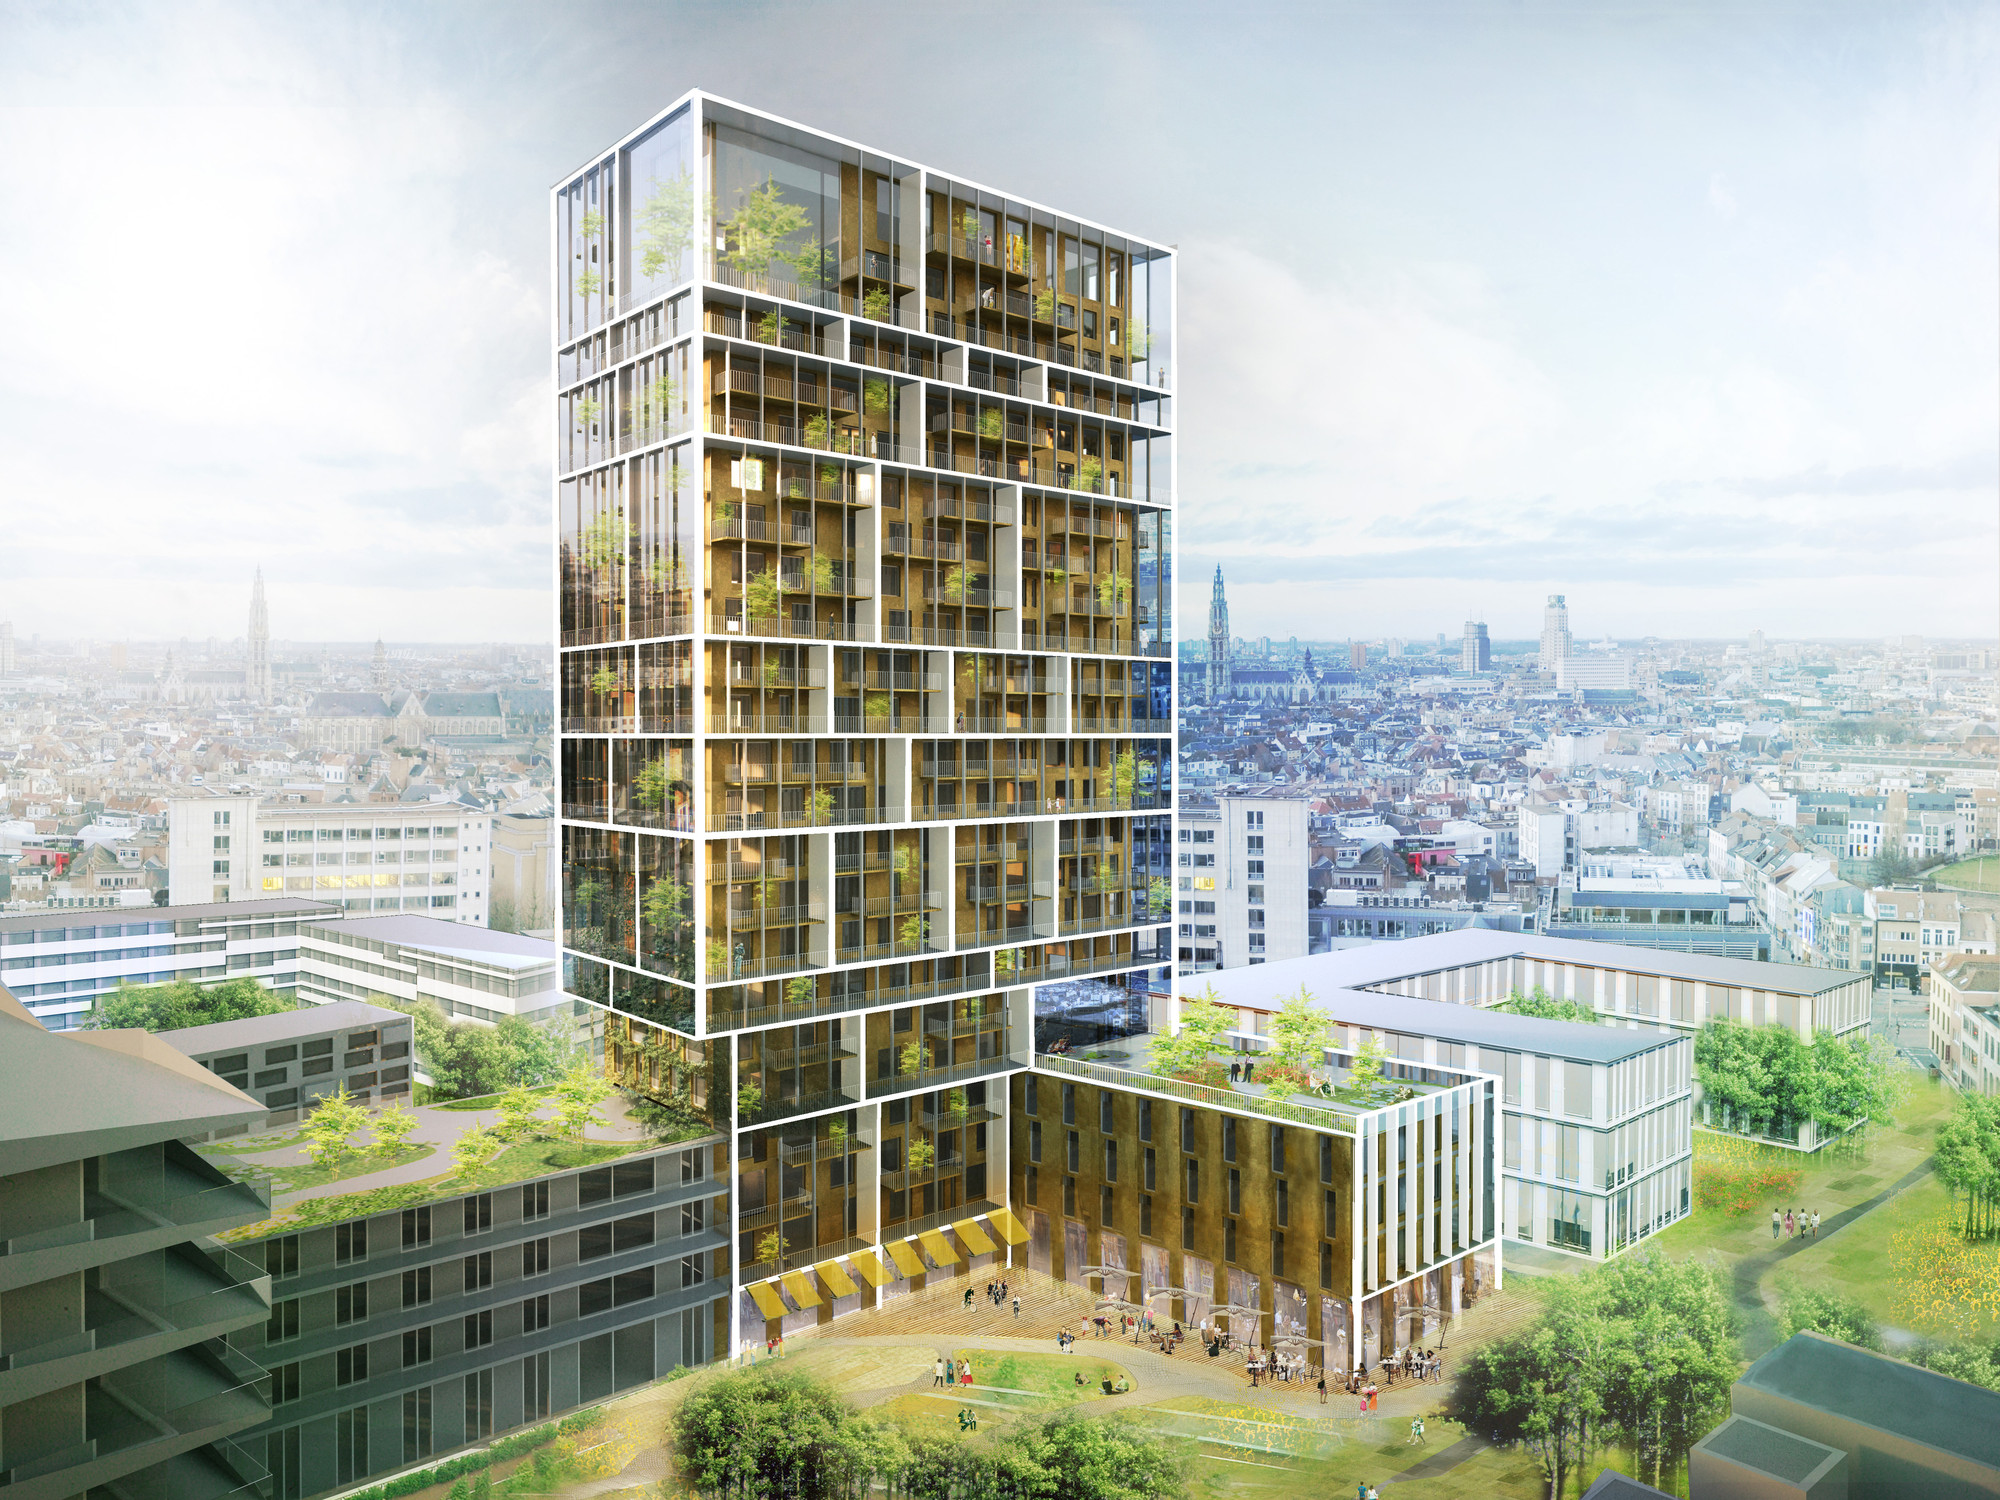 C f m ller chosen to design antwerp residential tower Modern residential towers